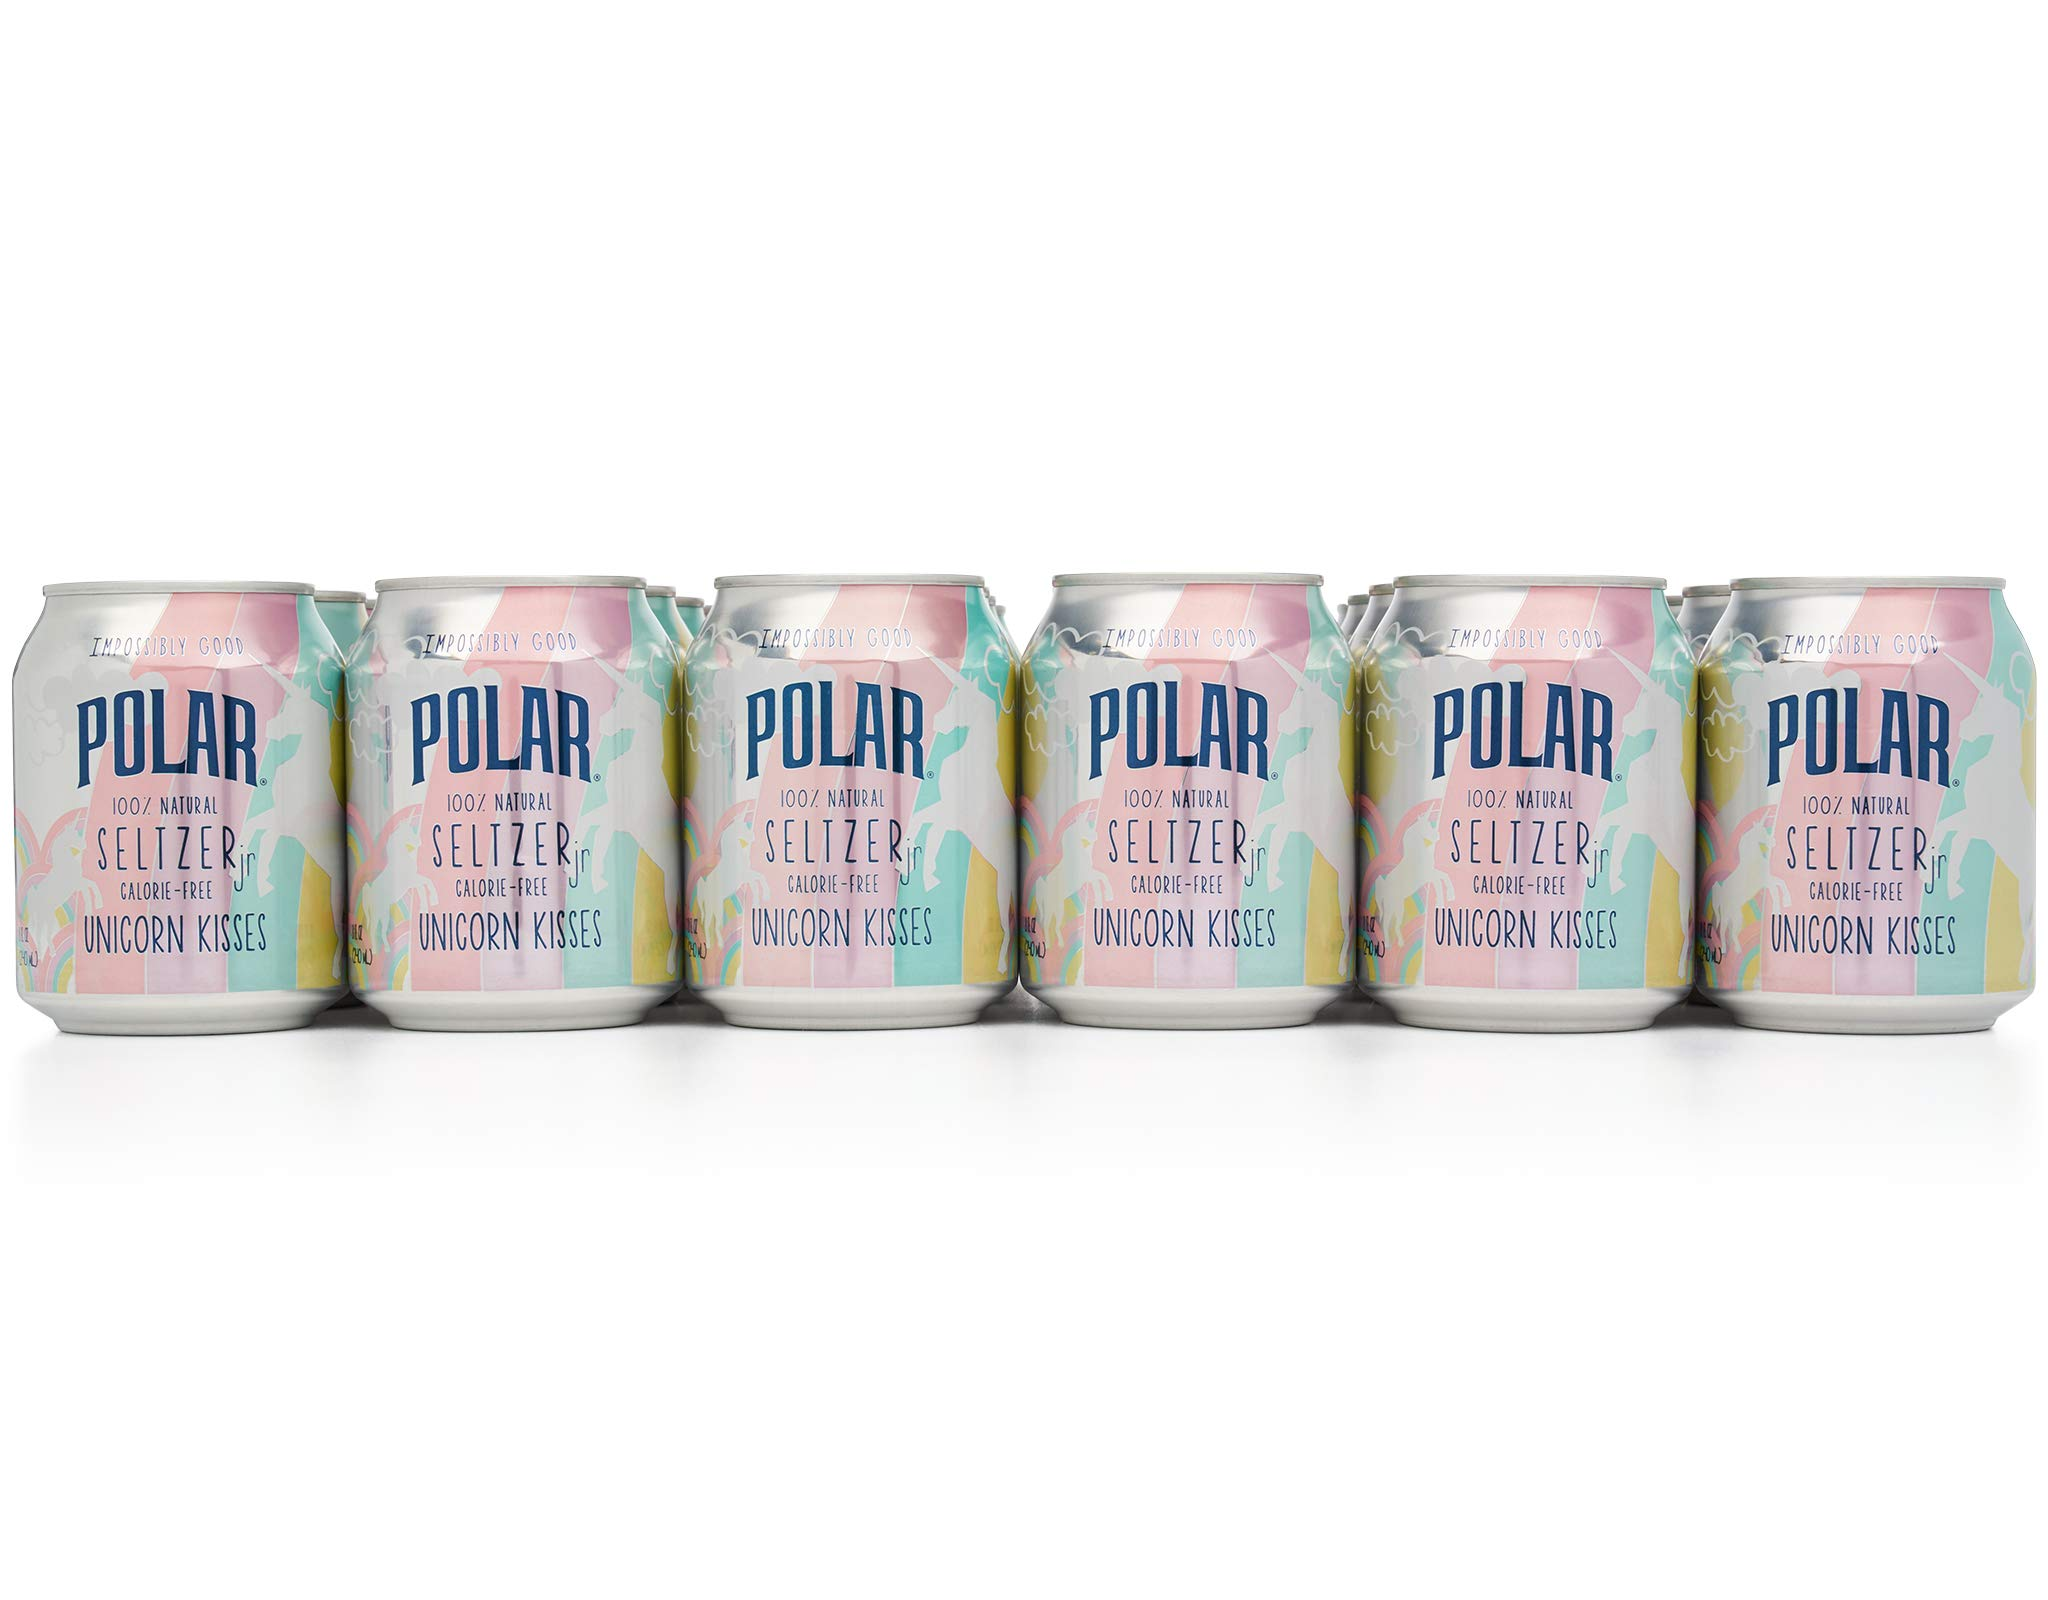 Polar 100% Natural Seltzer Jr Unicorn Kisses. 24 x 8 oz - Unleash your inner unicorn by POLAR